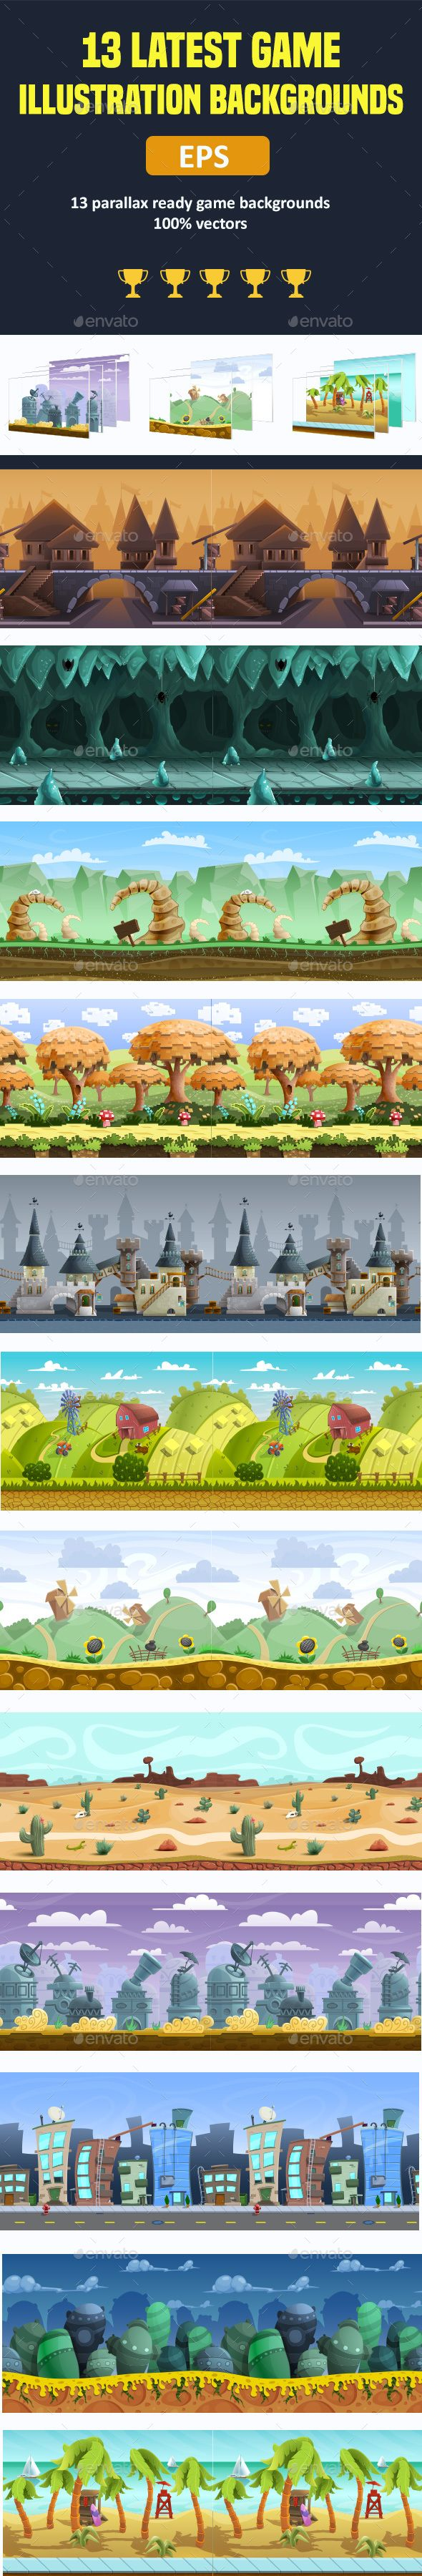 Parallax Ready Game Backgrounds - Backgrounds Game Assets